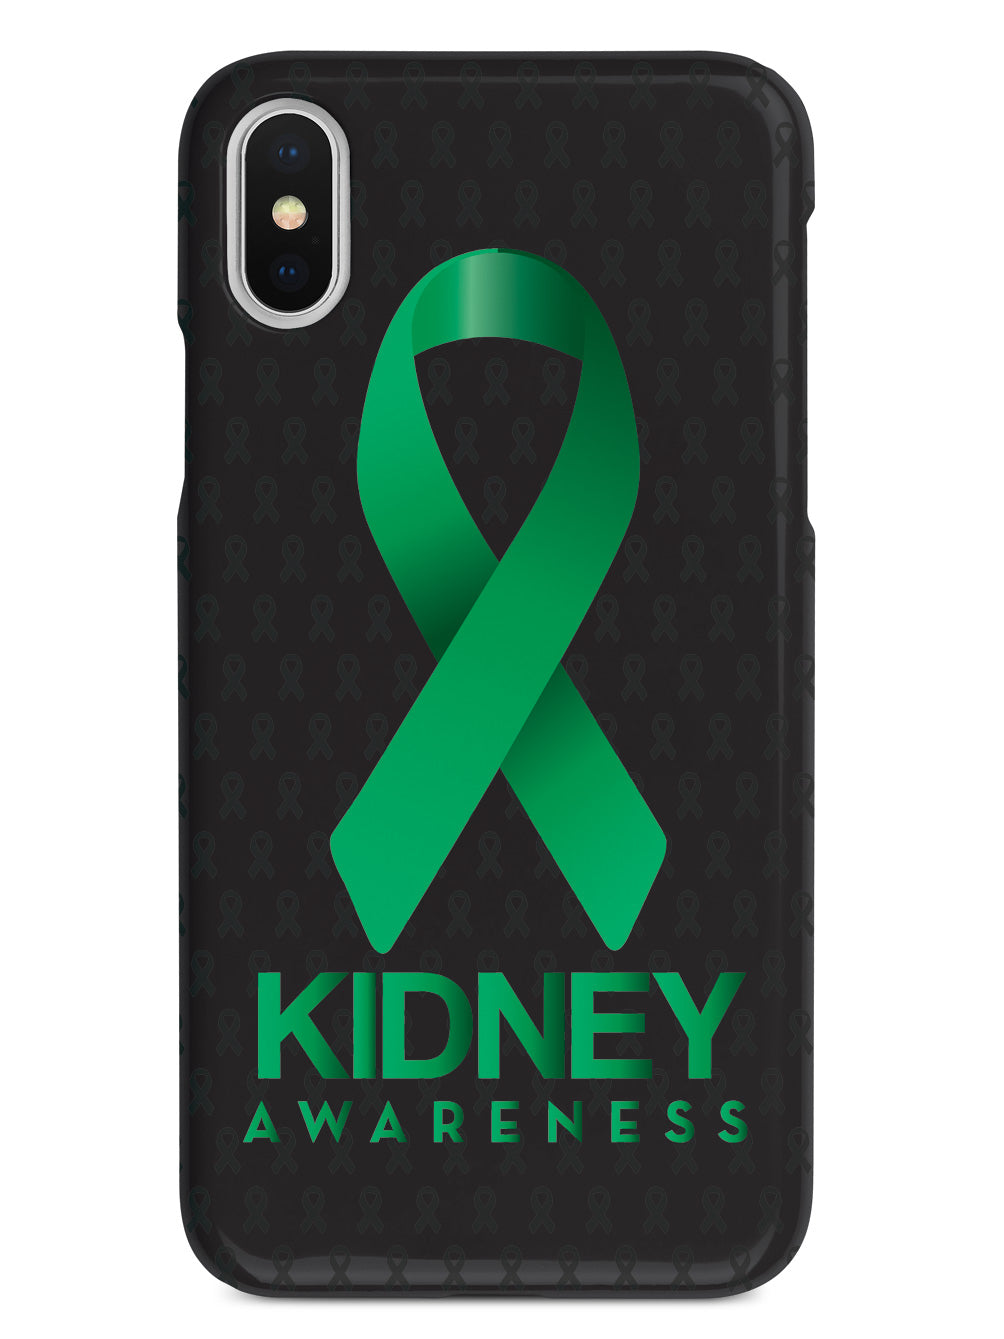 Kidney Awareness - Awareness Ribbon - Black Case